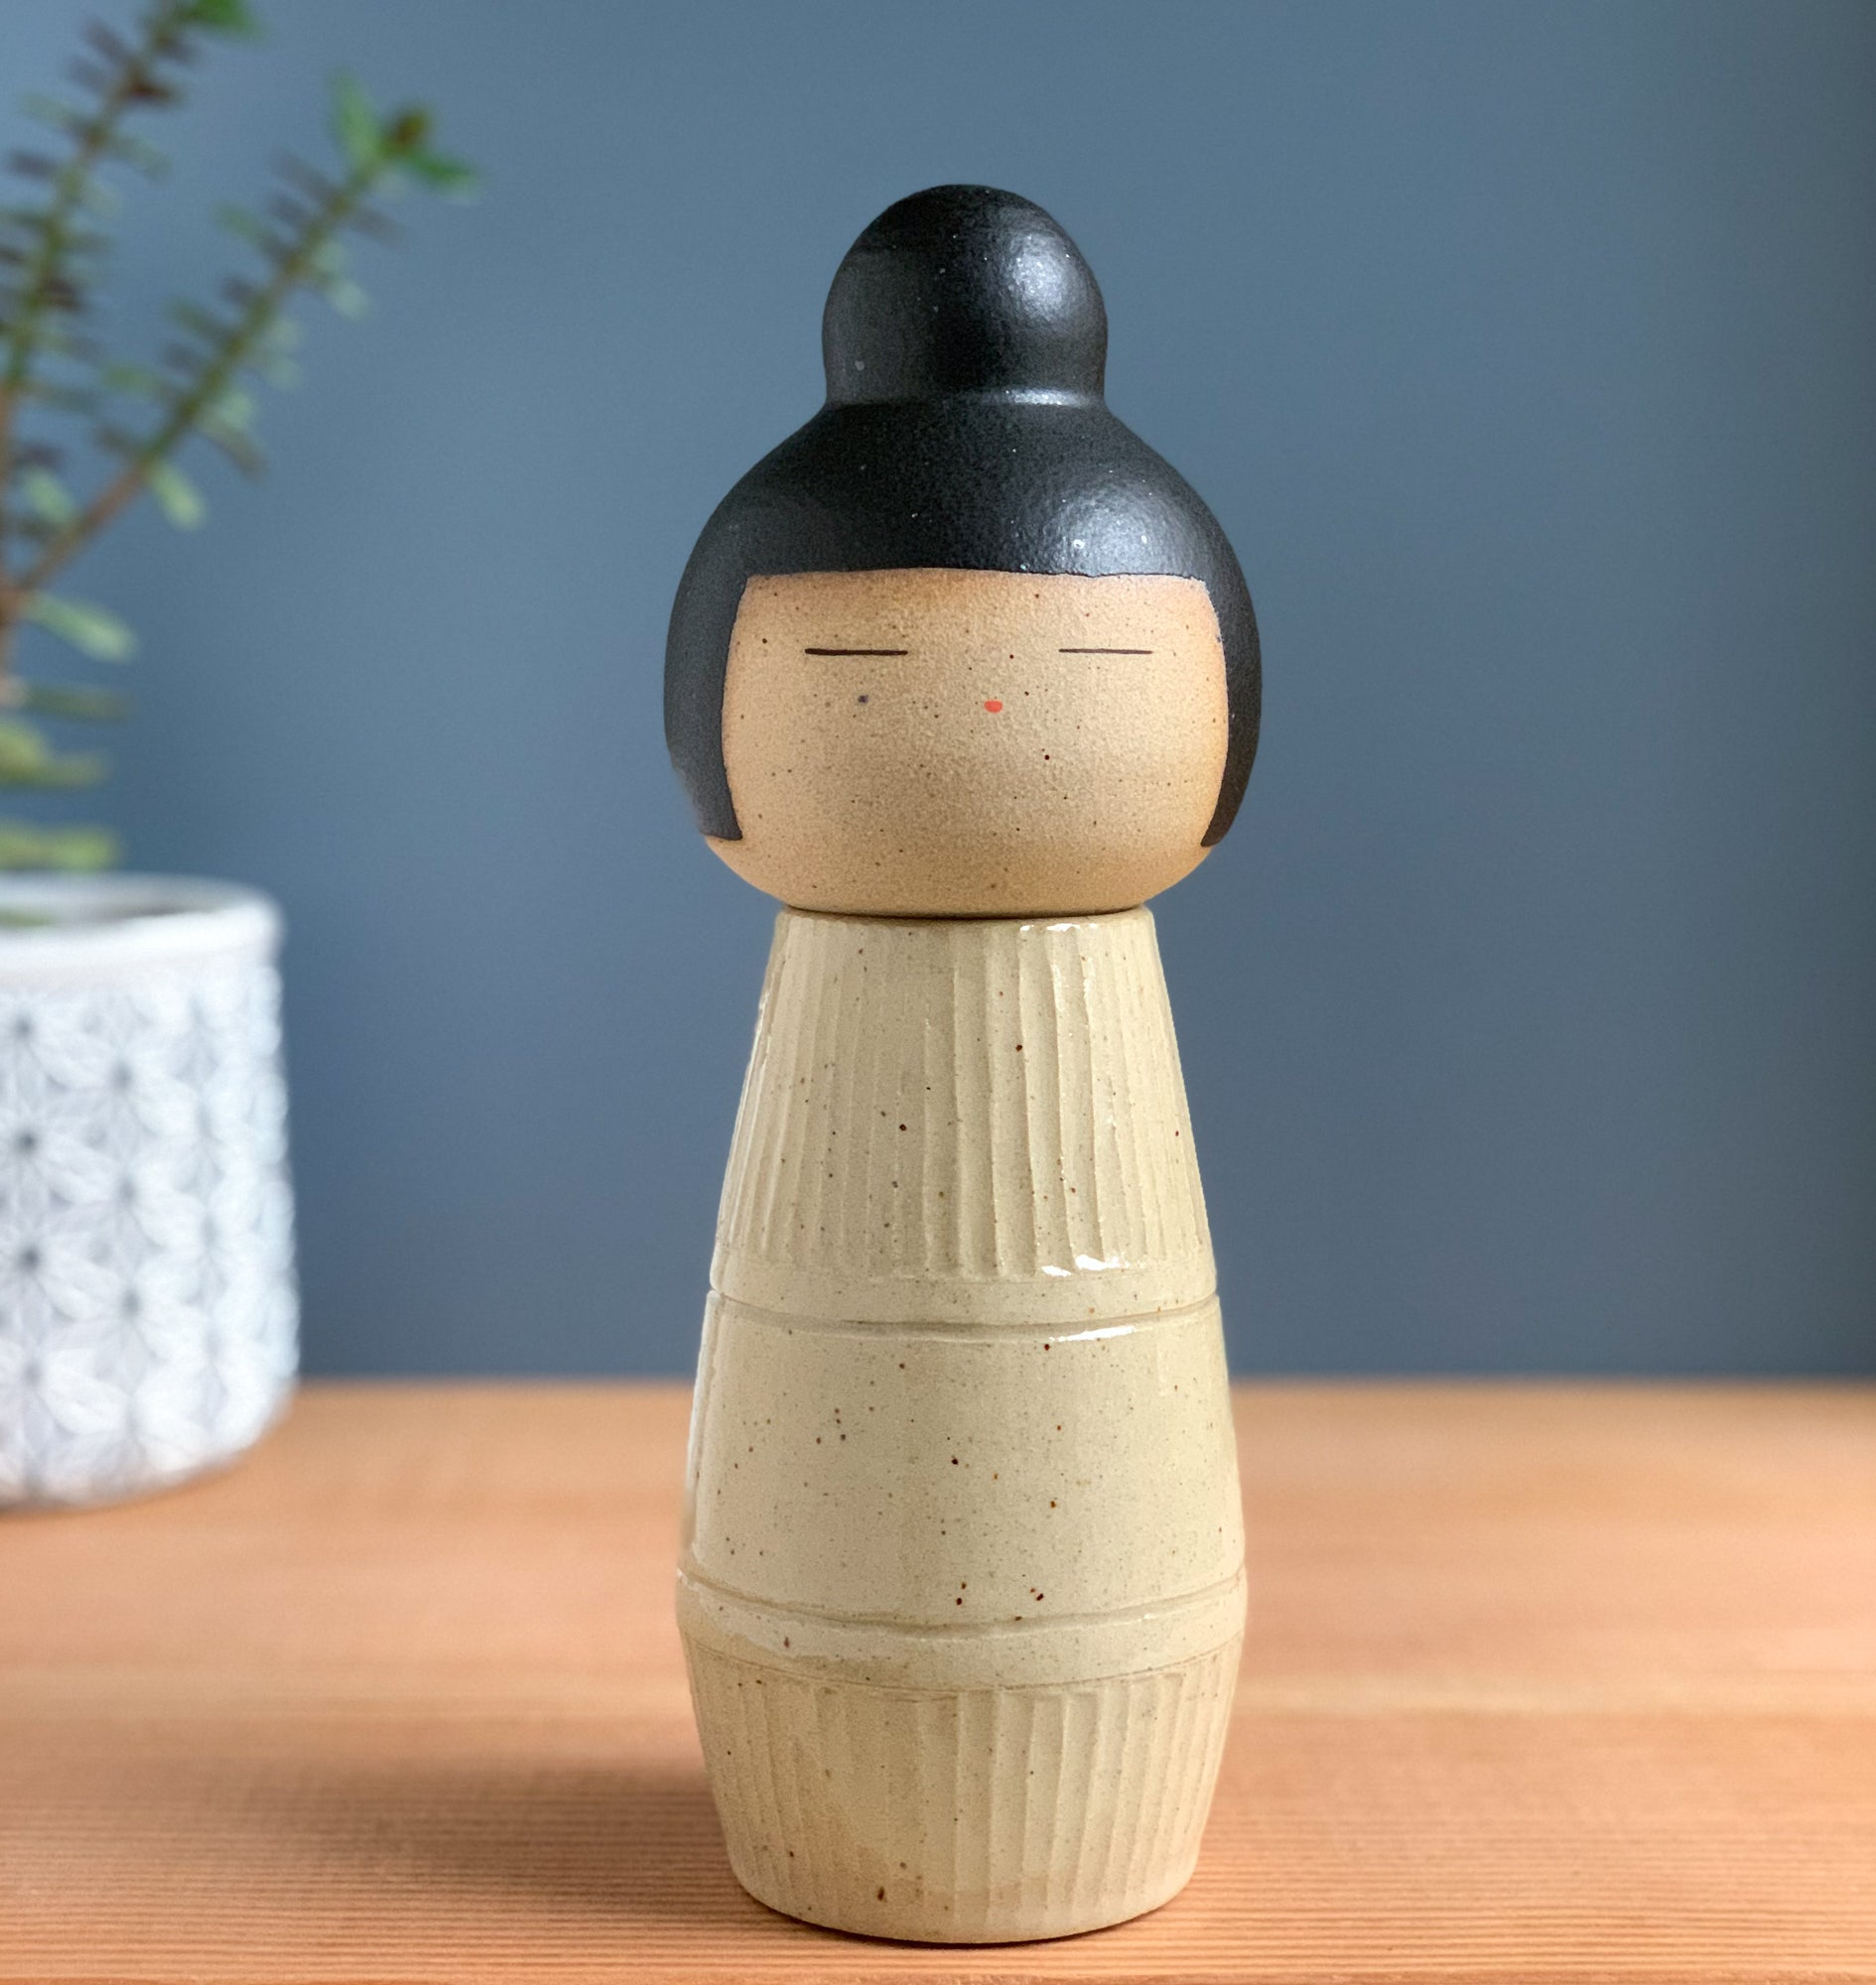 Beachy Mod Kokeshi-Inspired Ceramic Doll